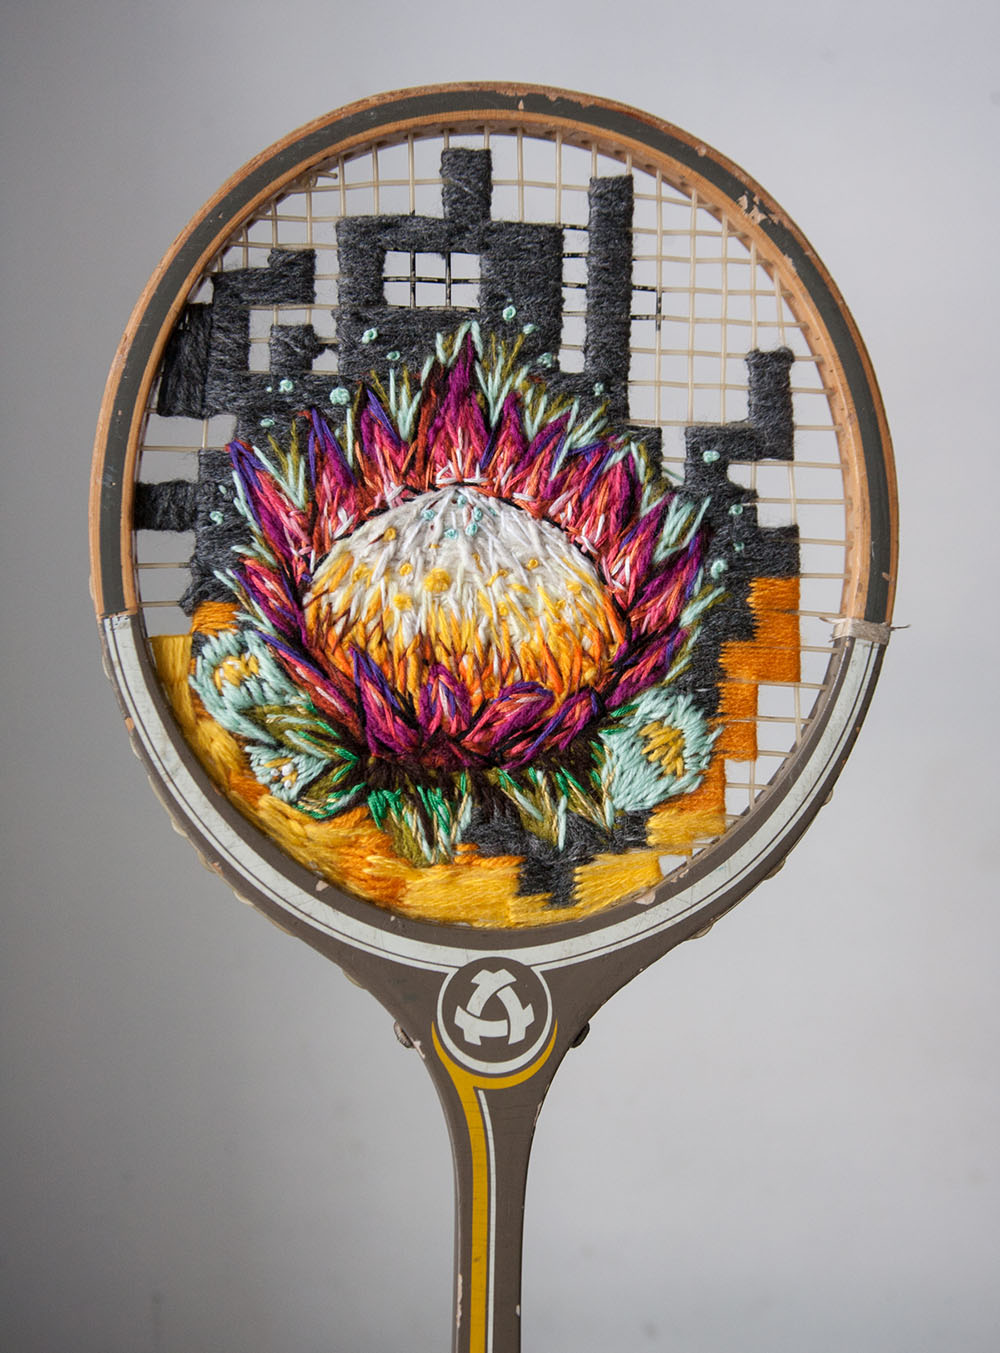 danielle_clough_tennis_racket_embroidery_05